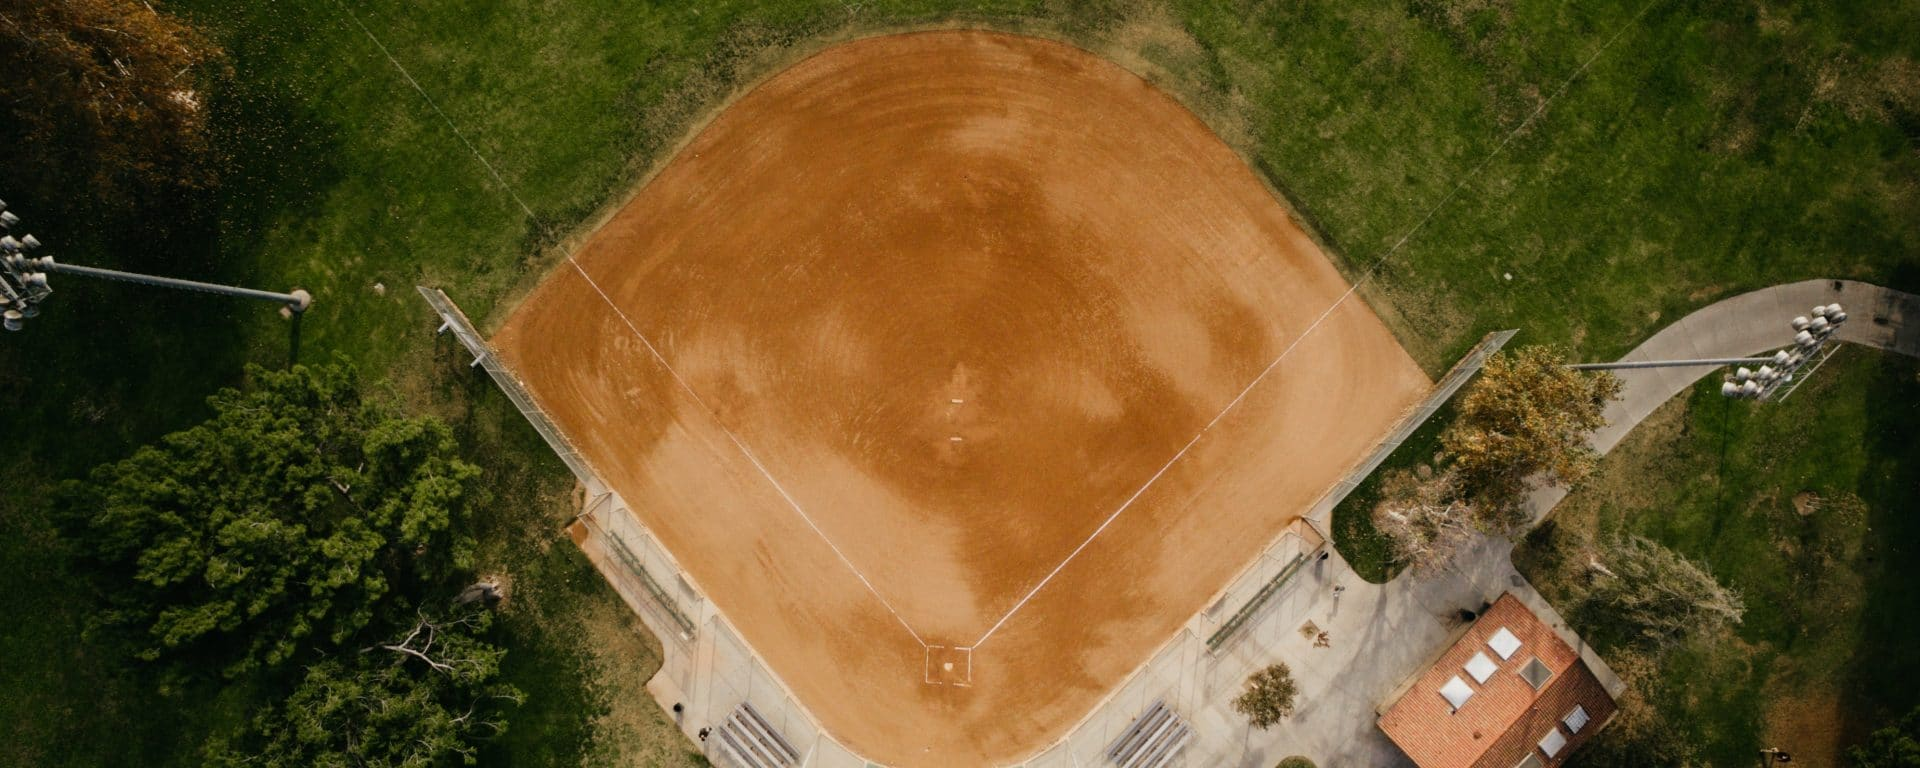 How We Can Use Sports to Glorify God